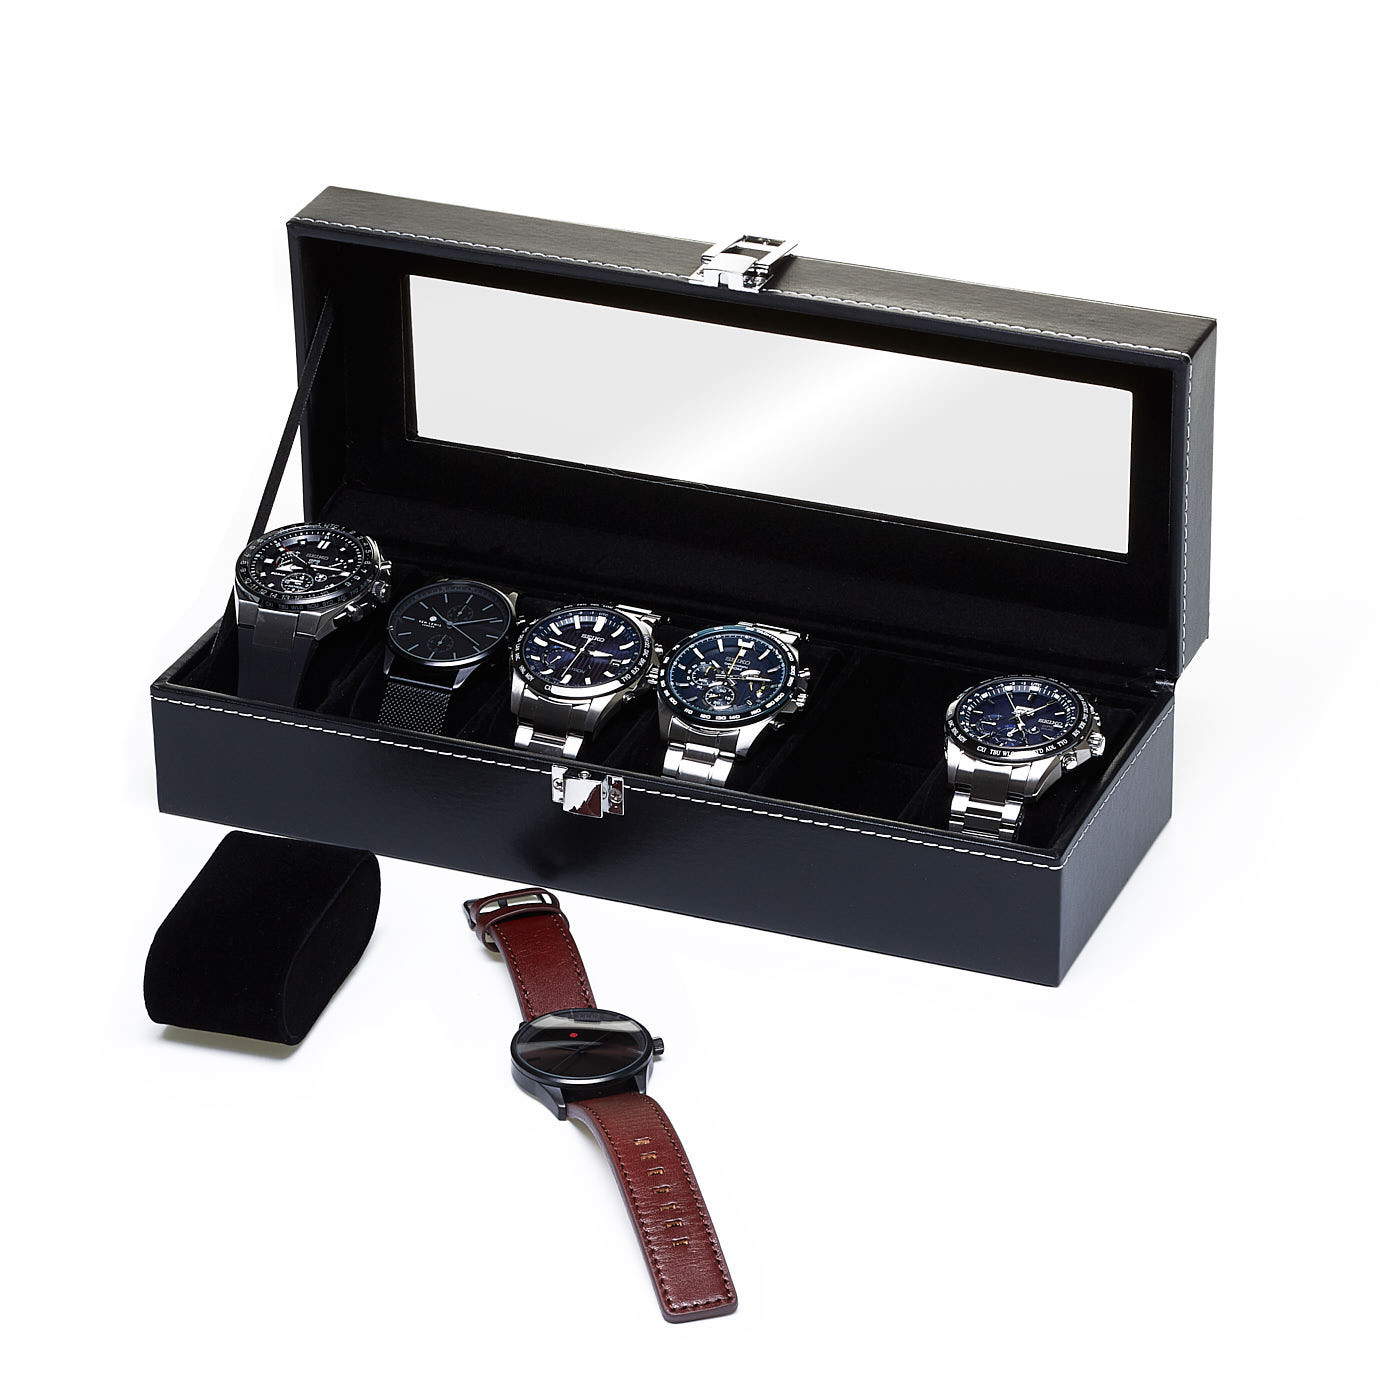 Watchbox Black, suitable for 6 watches.